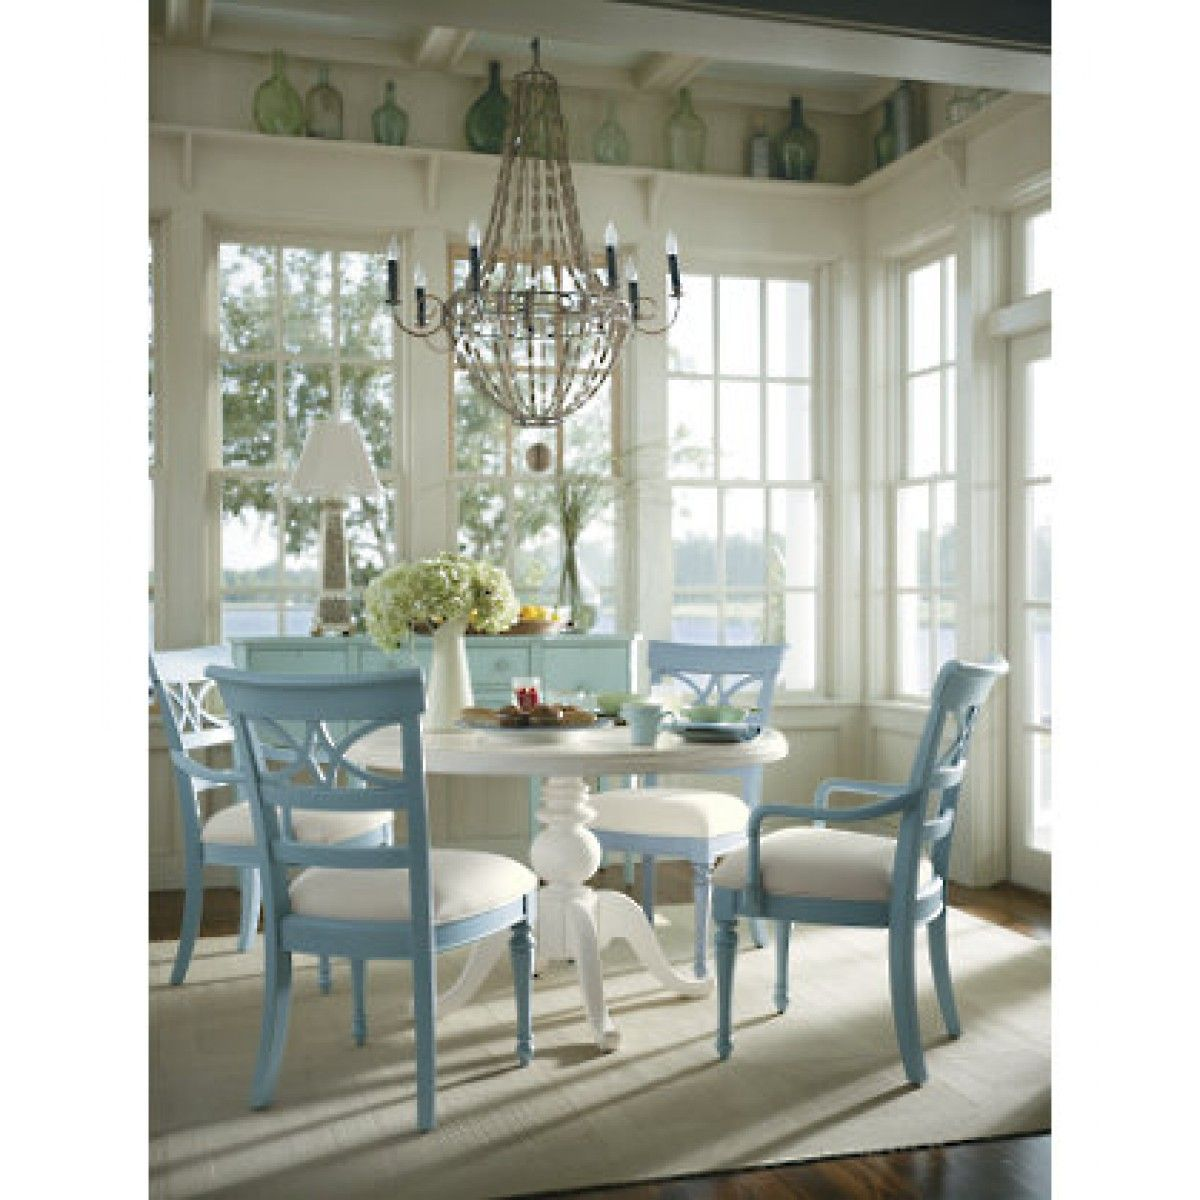 Stanley Dining Room Set By Coastal Living Rooms Furniture